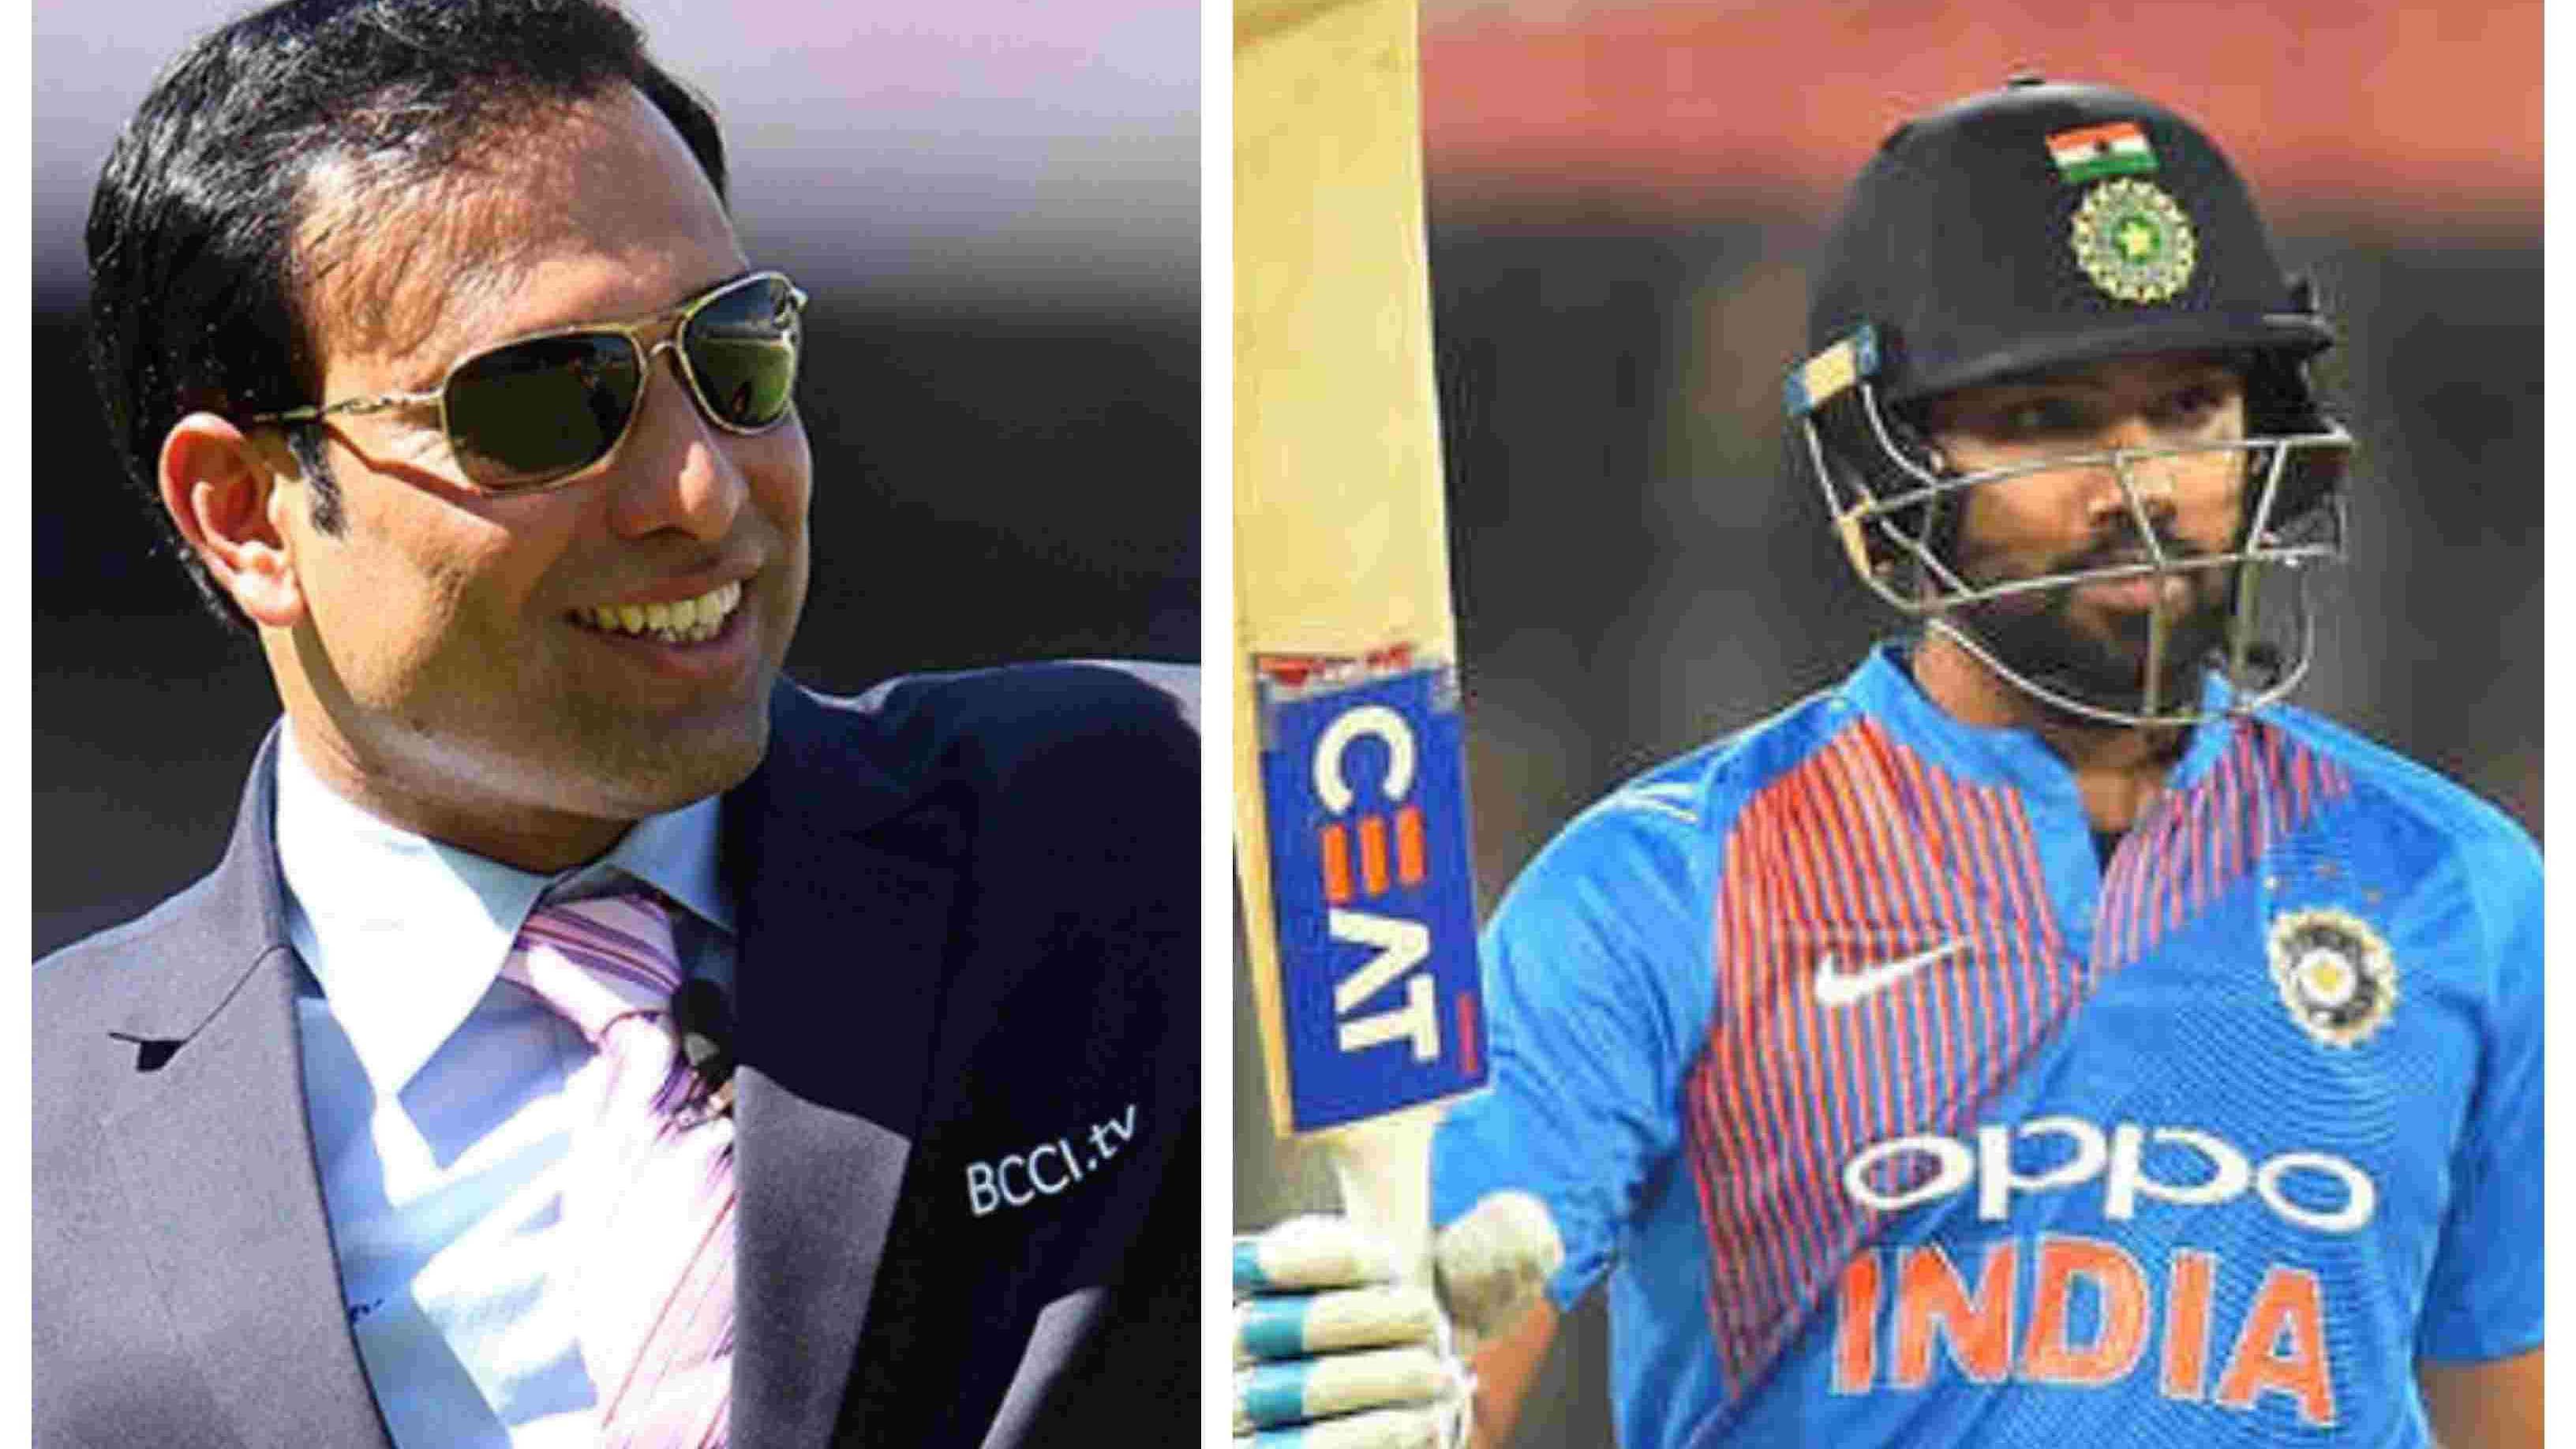 IND v WI 2018: VVS Laxman impressed with Rohit Sharma's captaincy skills